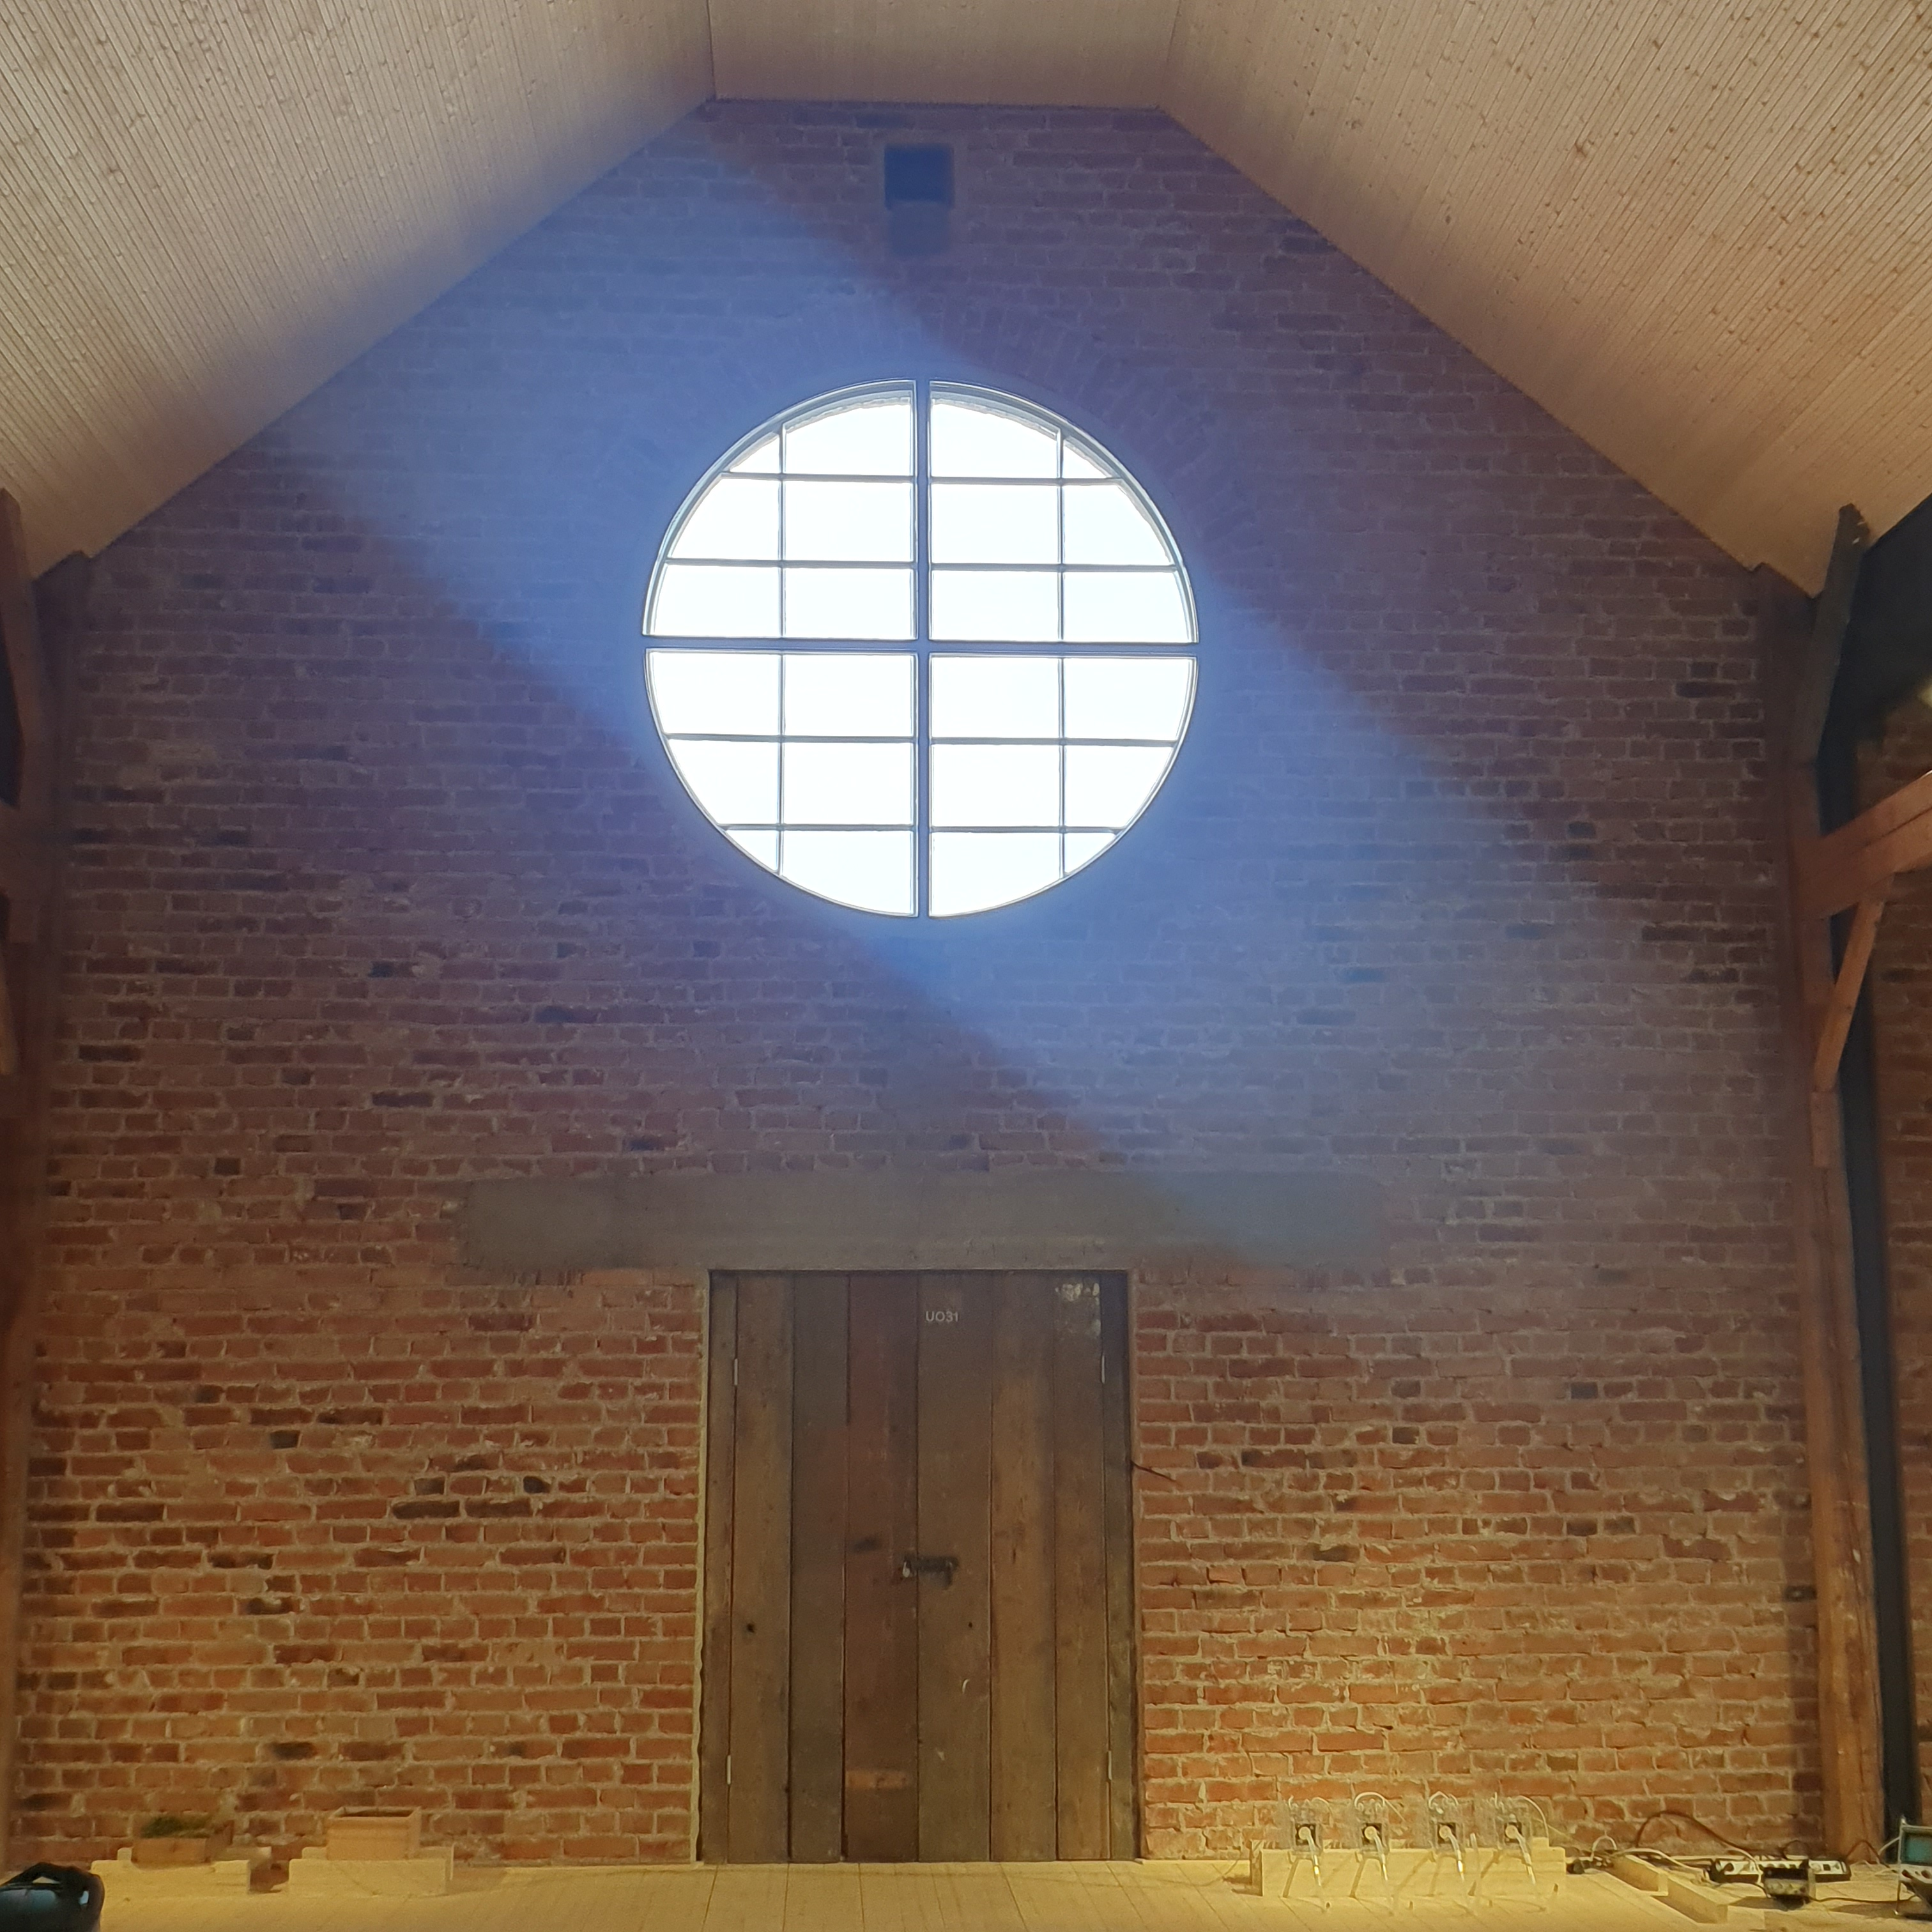 Large round window with light pouring through it, set into a red brick wall